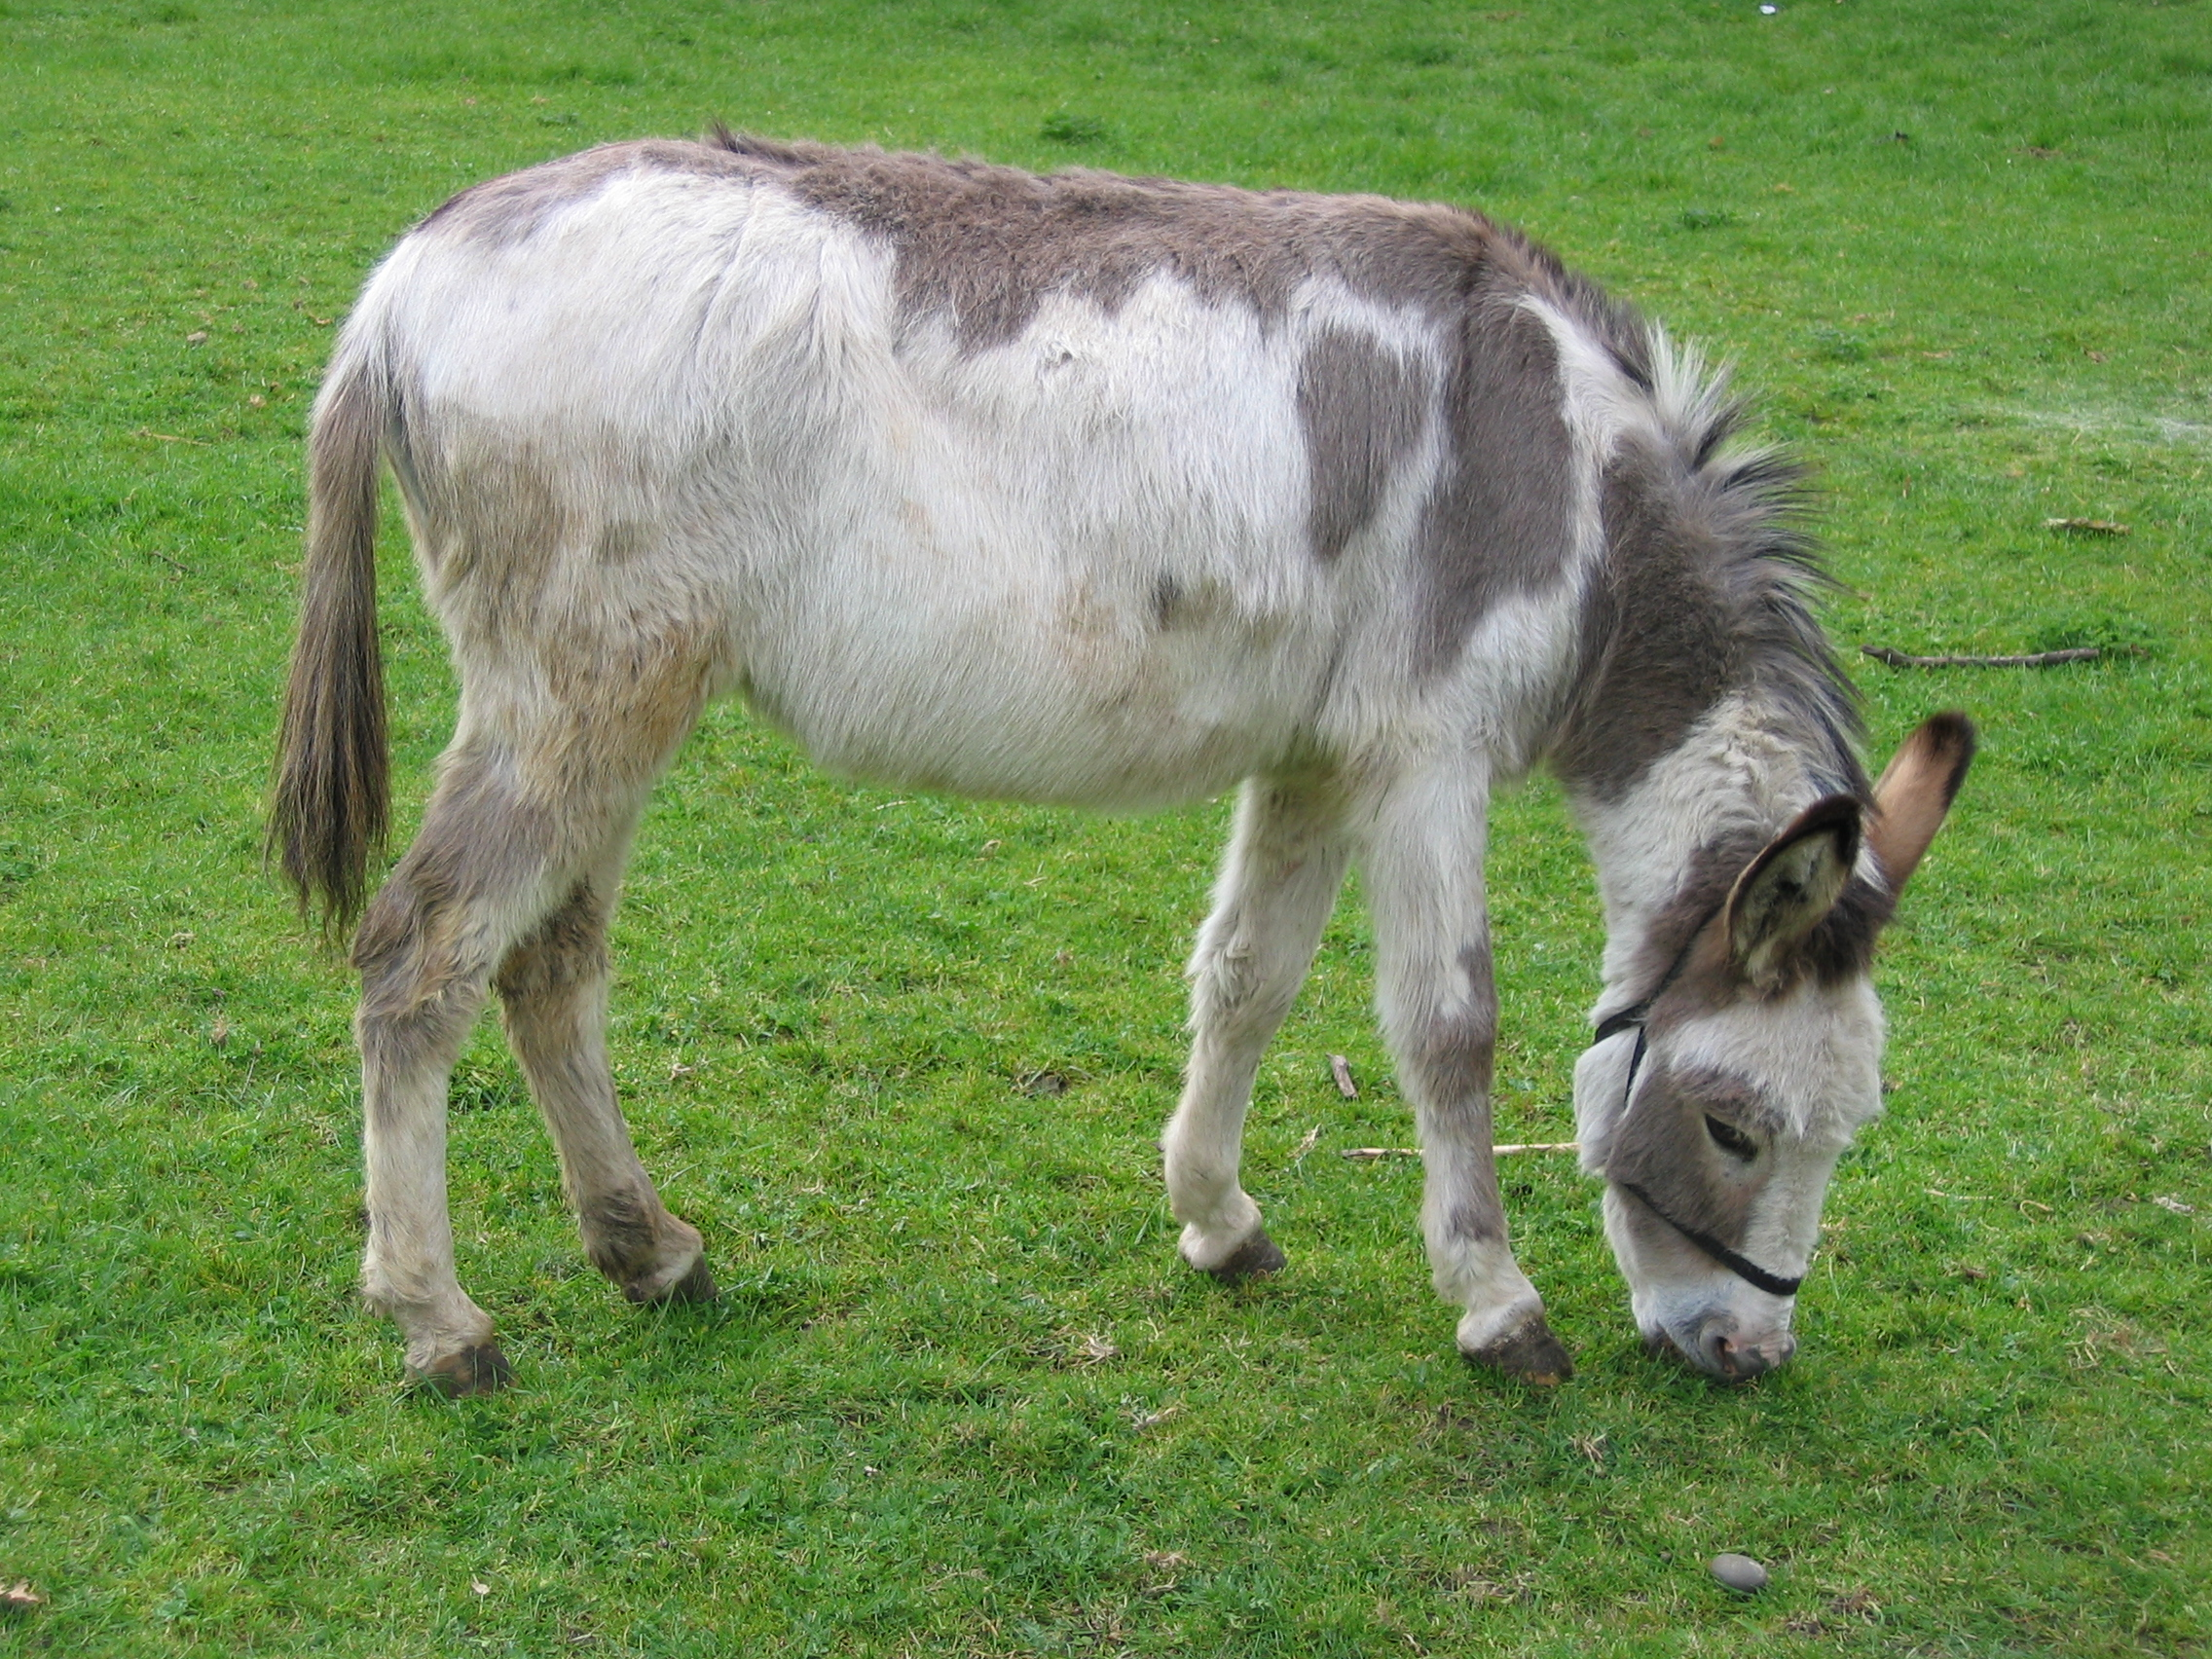 Farm donkeys - photo#2